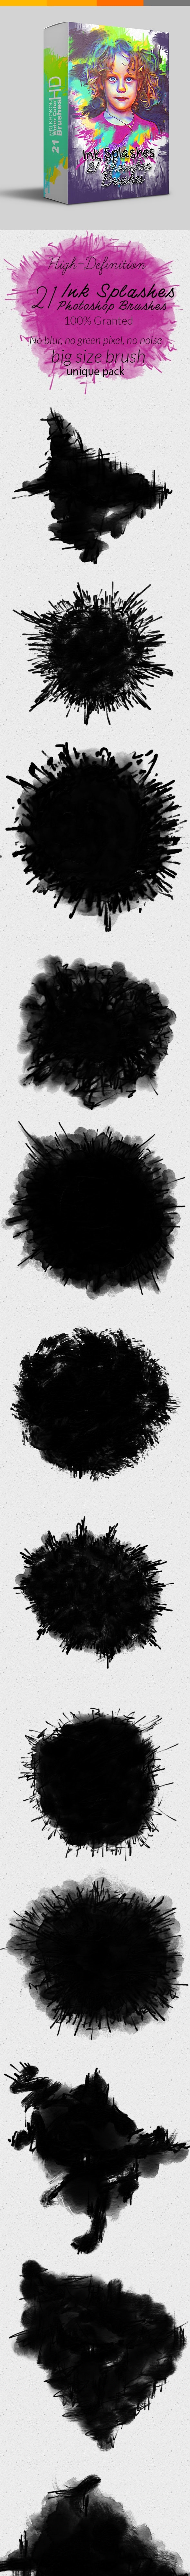 Ink Splashes Photoshop Brushes - Brushes Photoshop